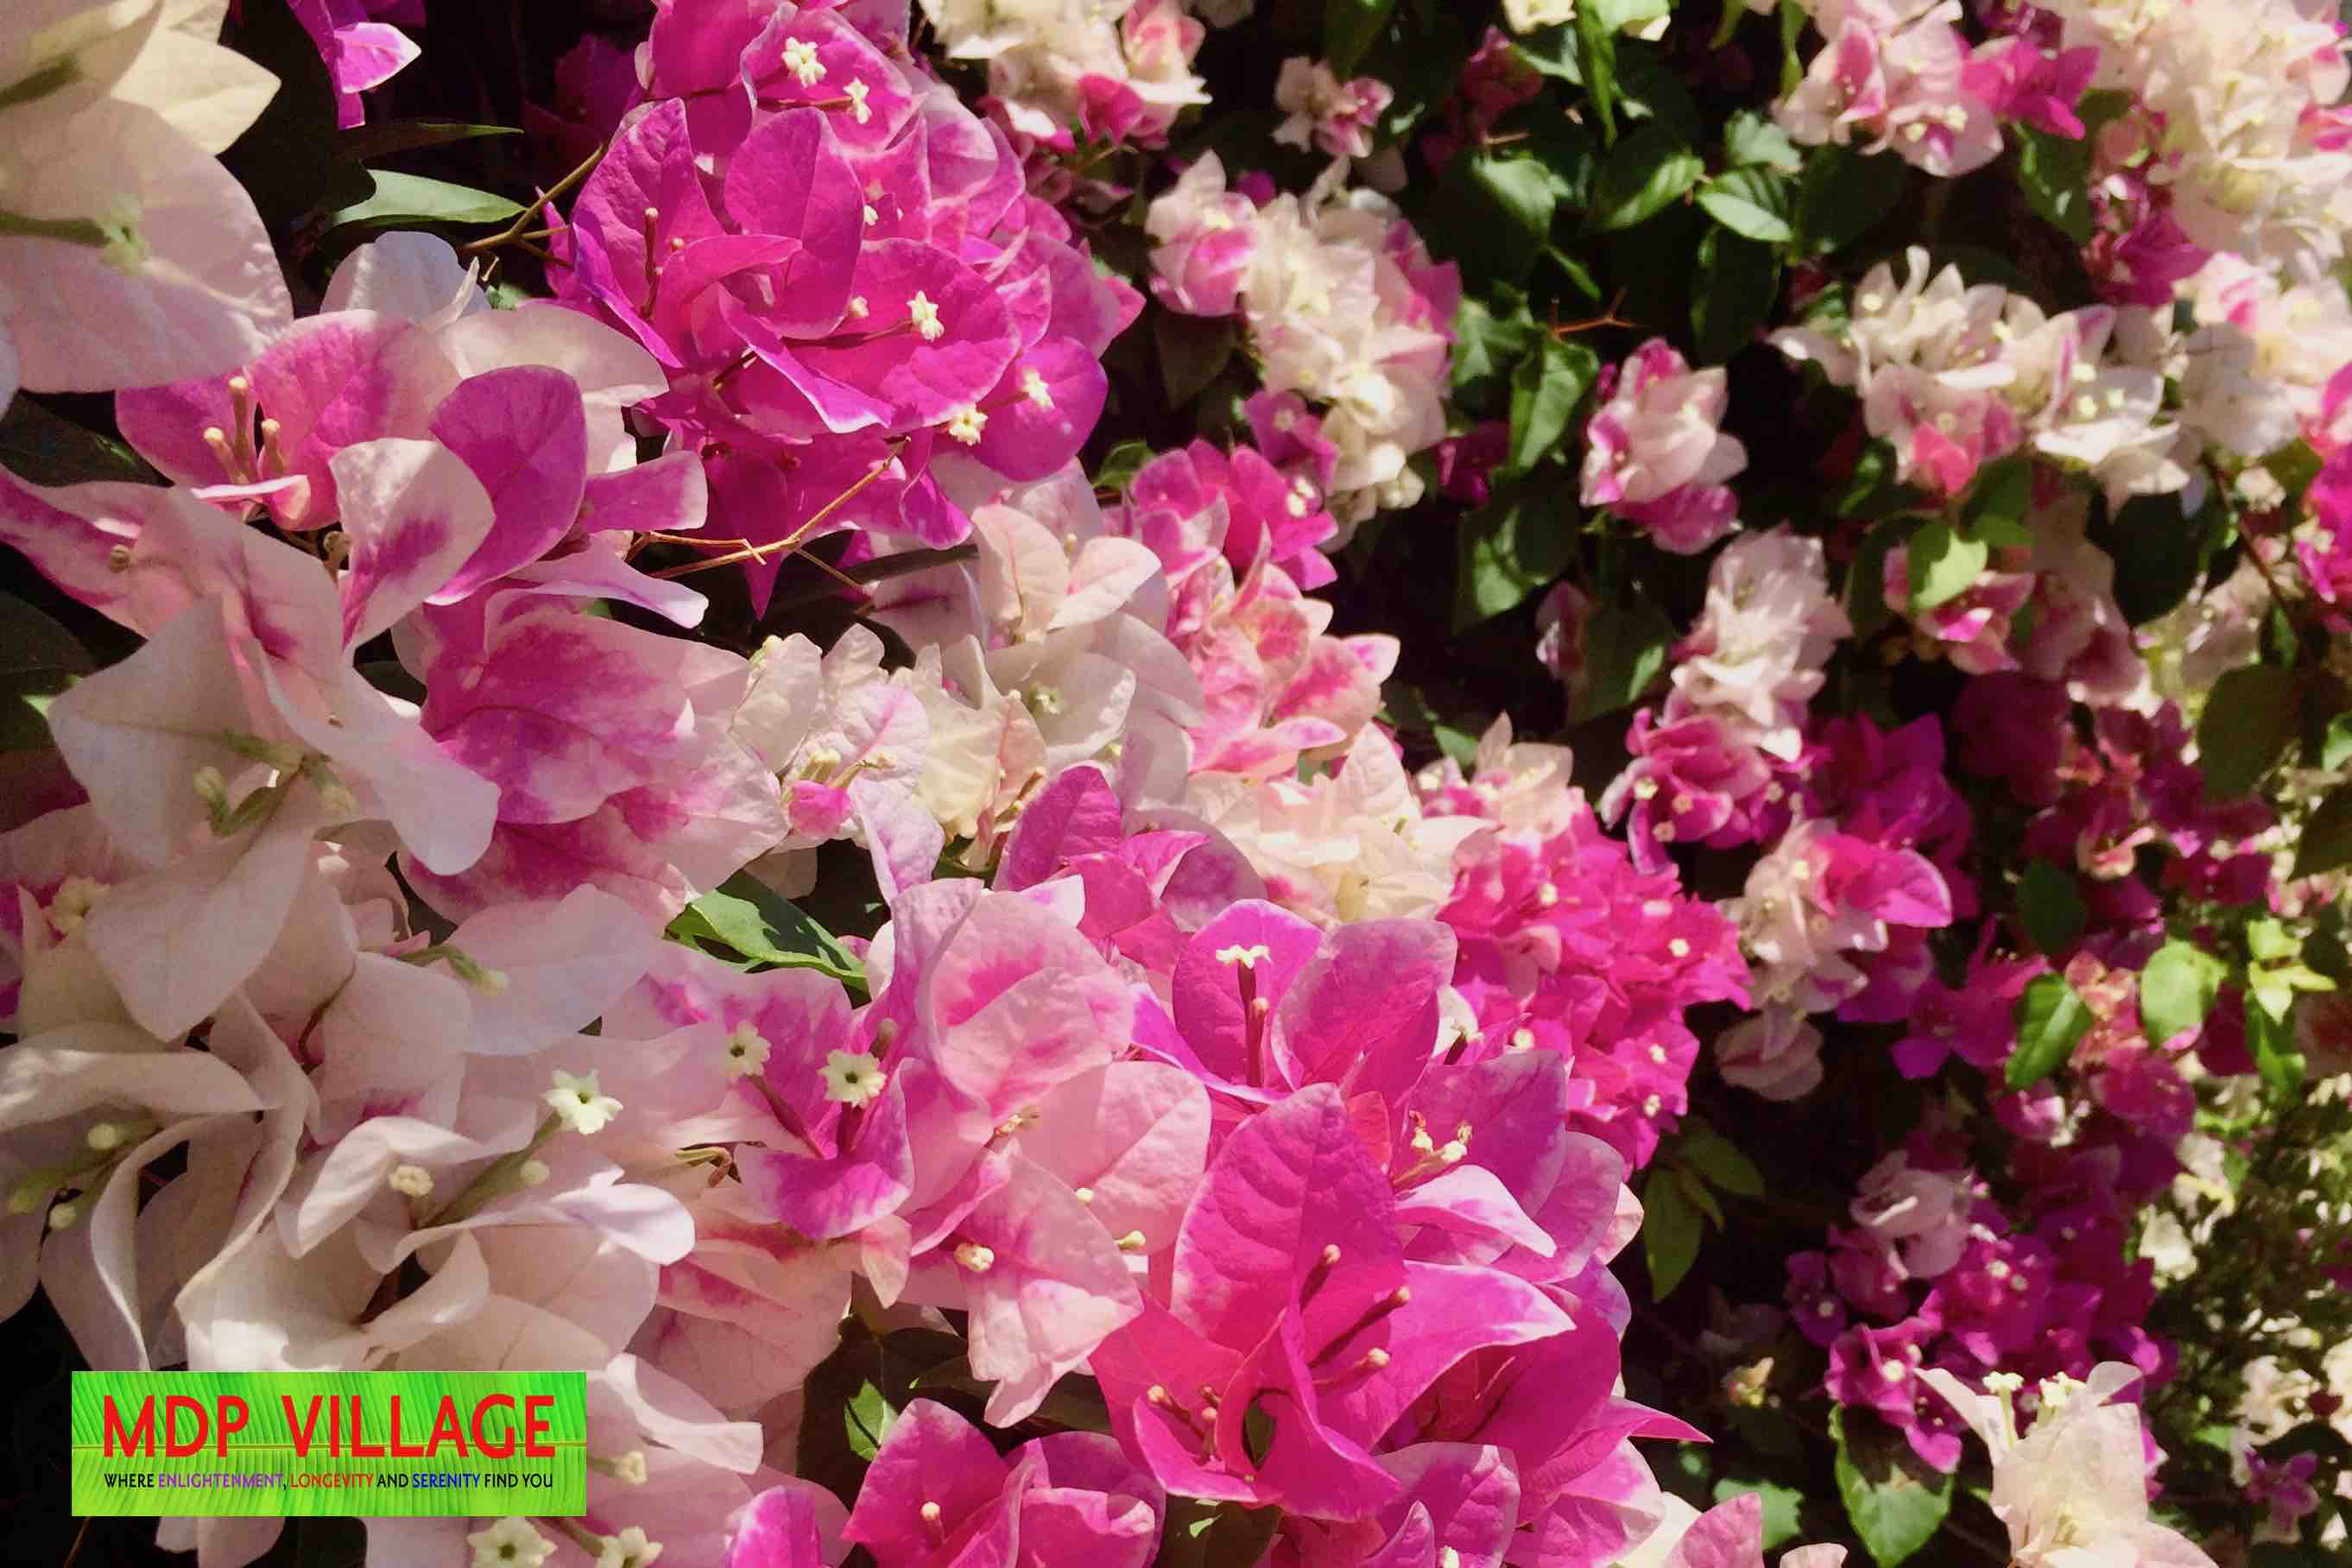 The natural beauty of Bougainvillea decorates the MDP Village